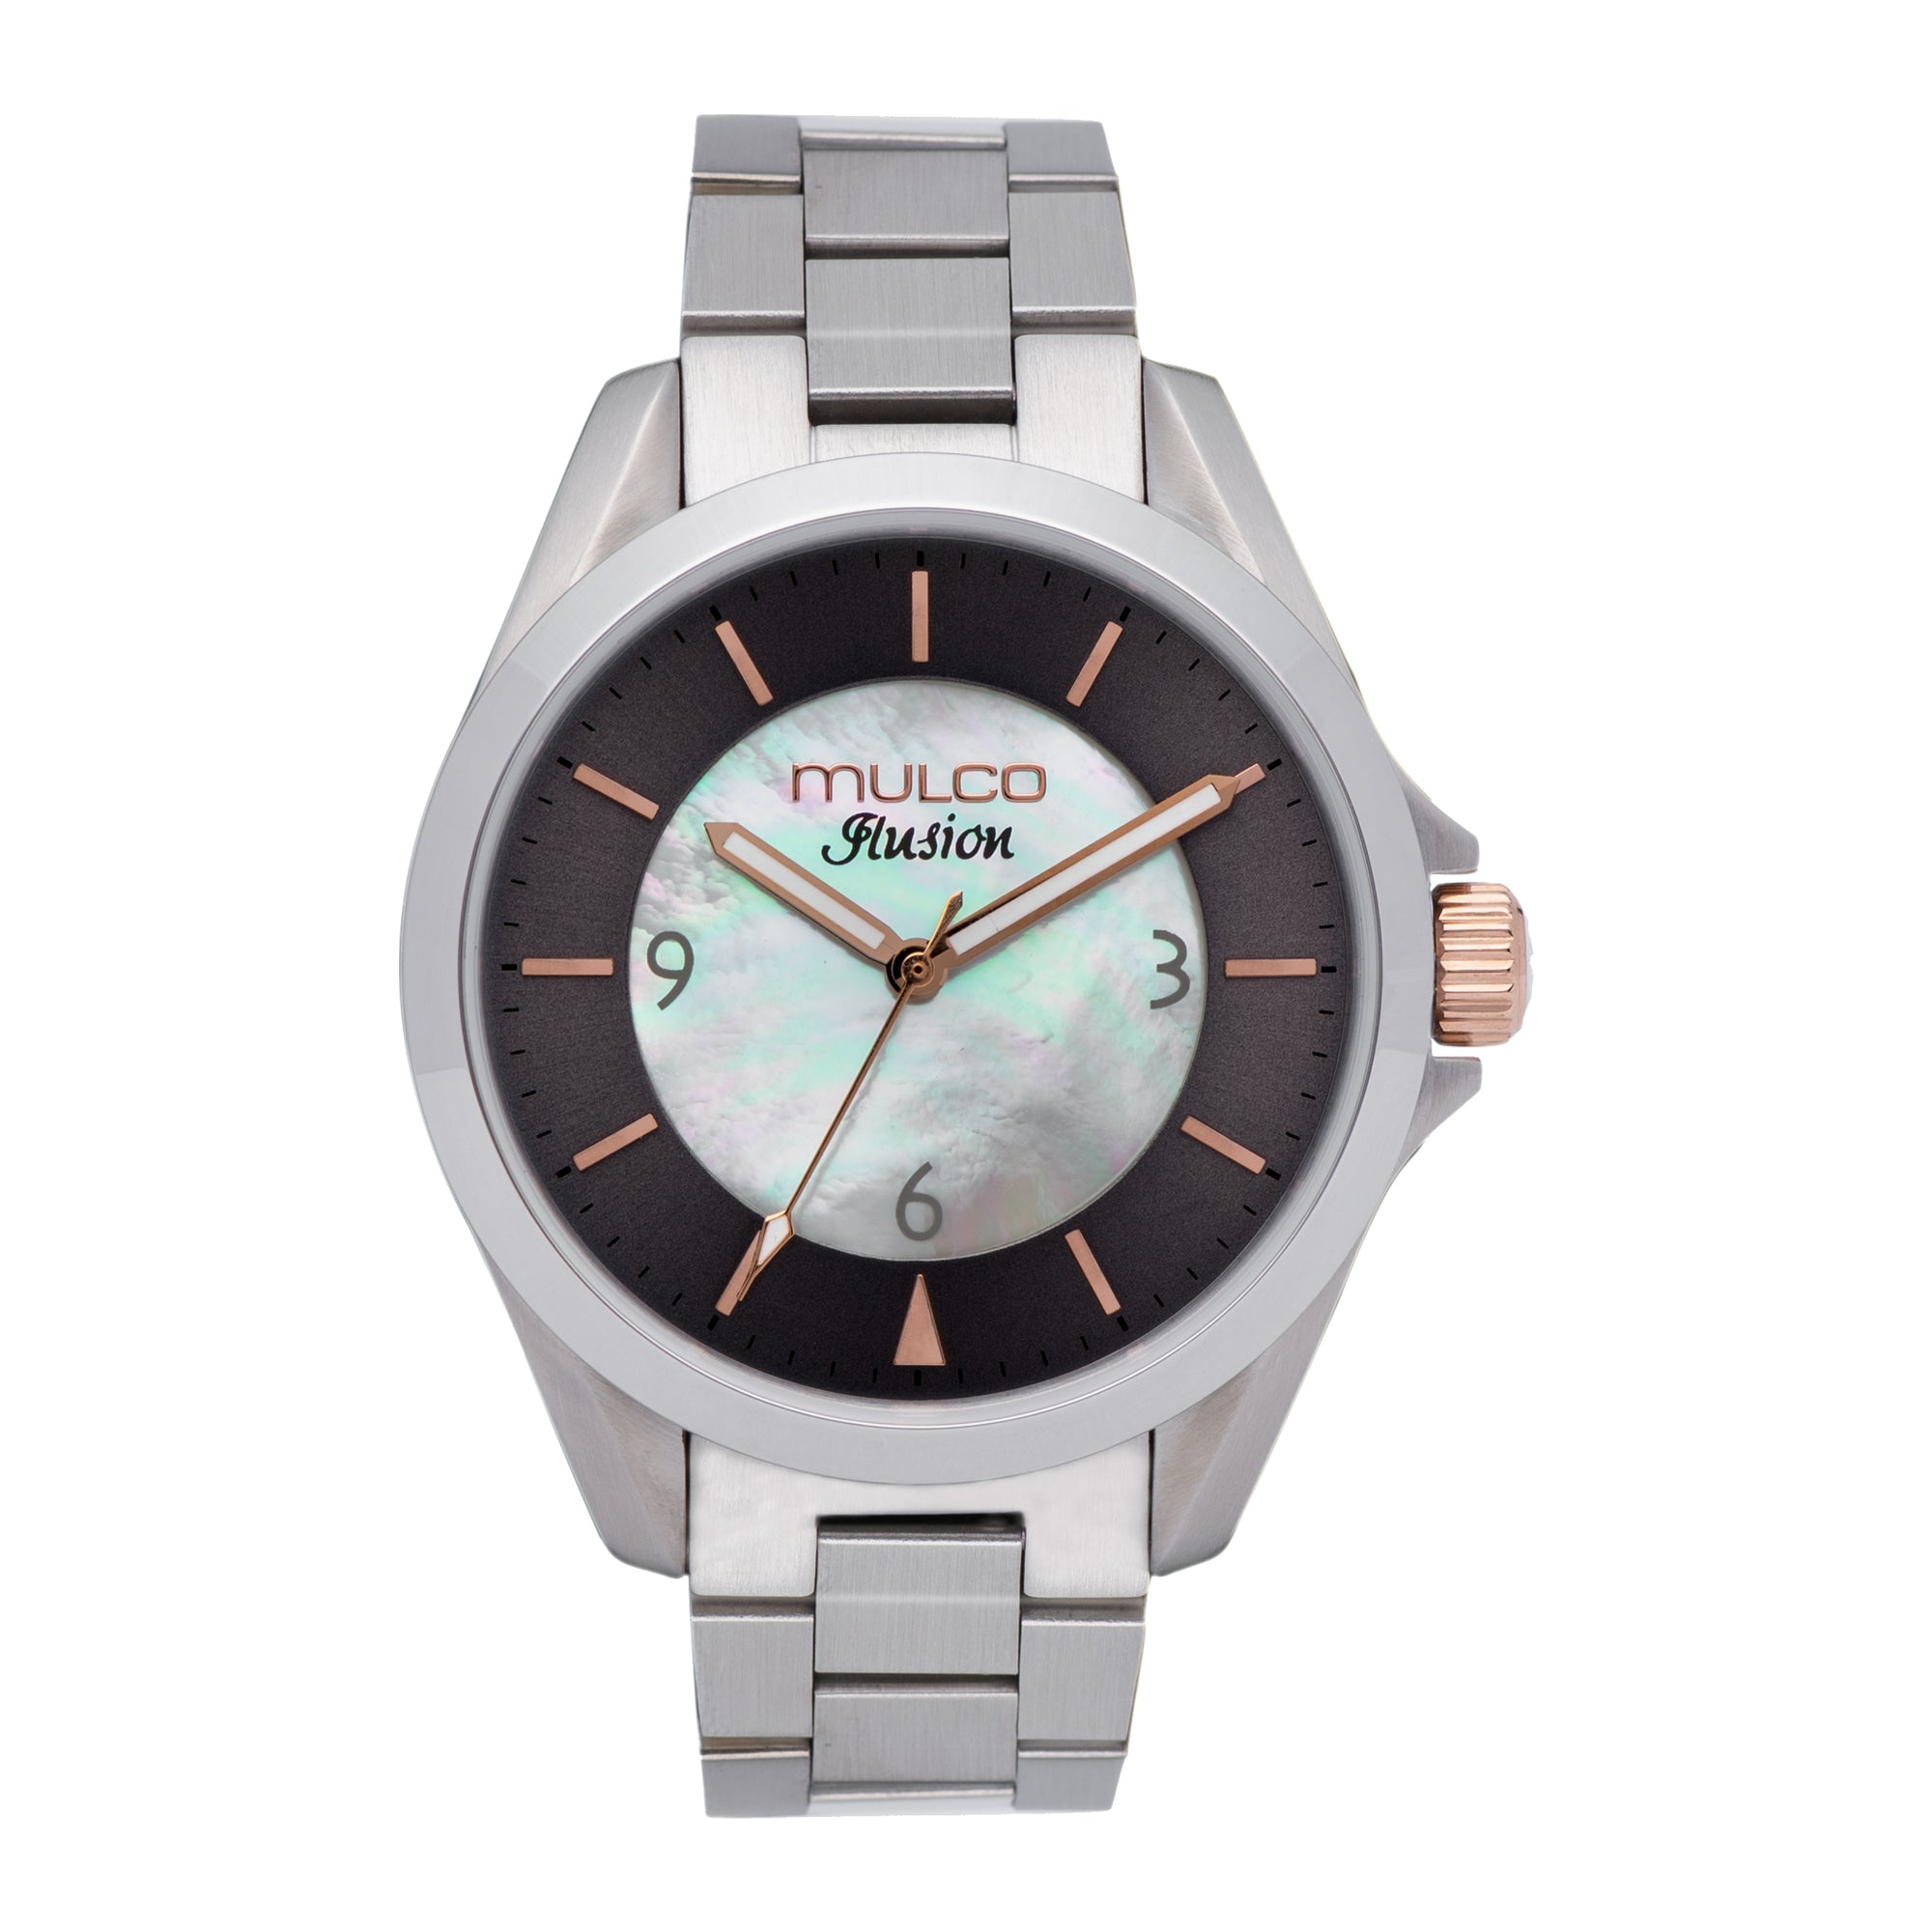 Illusion Lady-Watches-Mulco-Watches